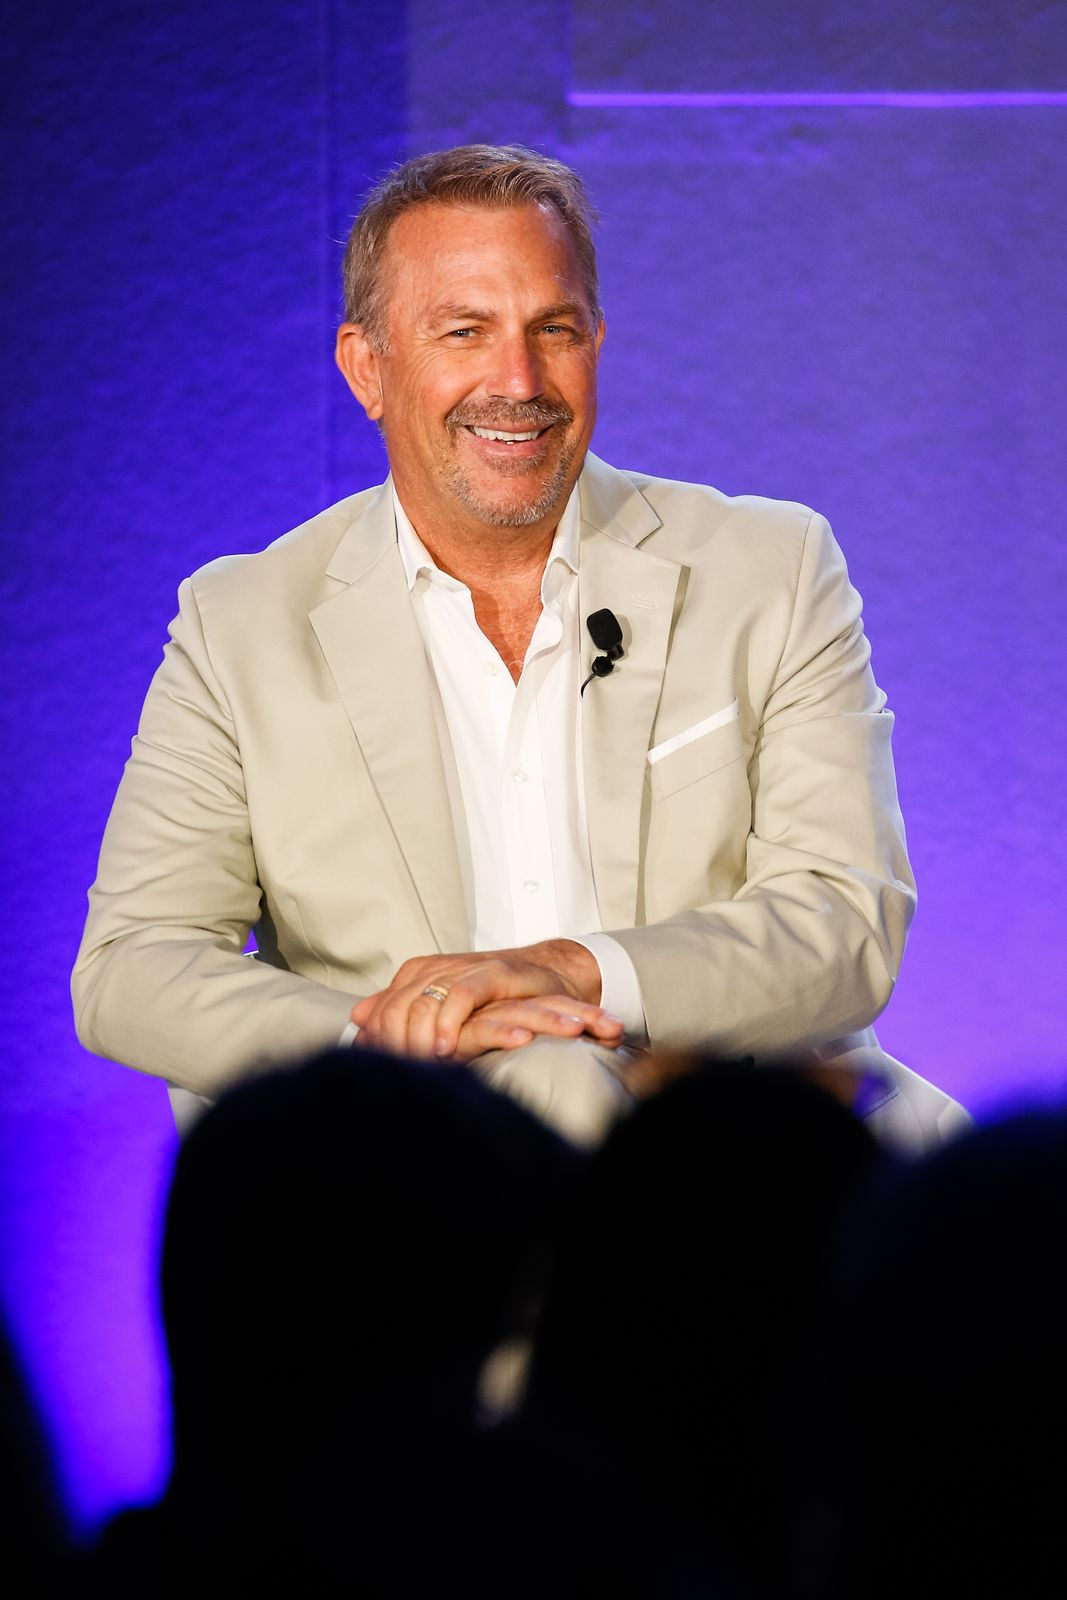 """Kevin Costner during """"A conversation with Kevin Costner from Paramount Network and Yellowstone"""" at the Cannes Lions Festival on June 21, 2018 